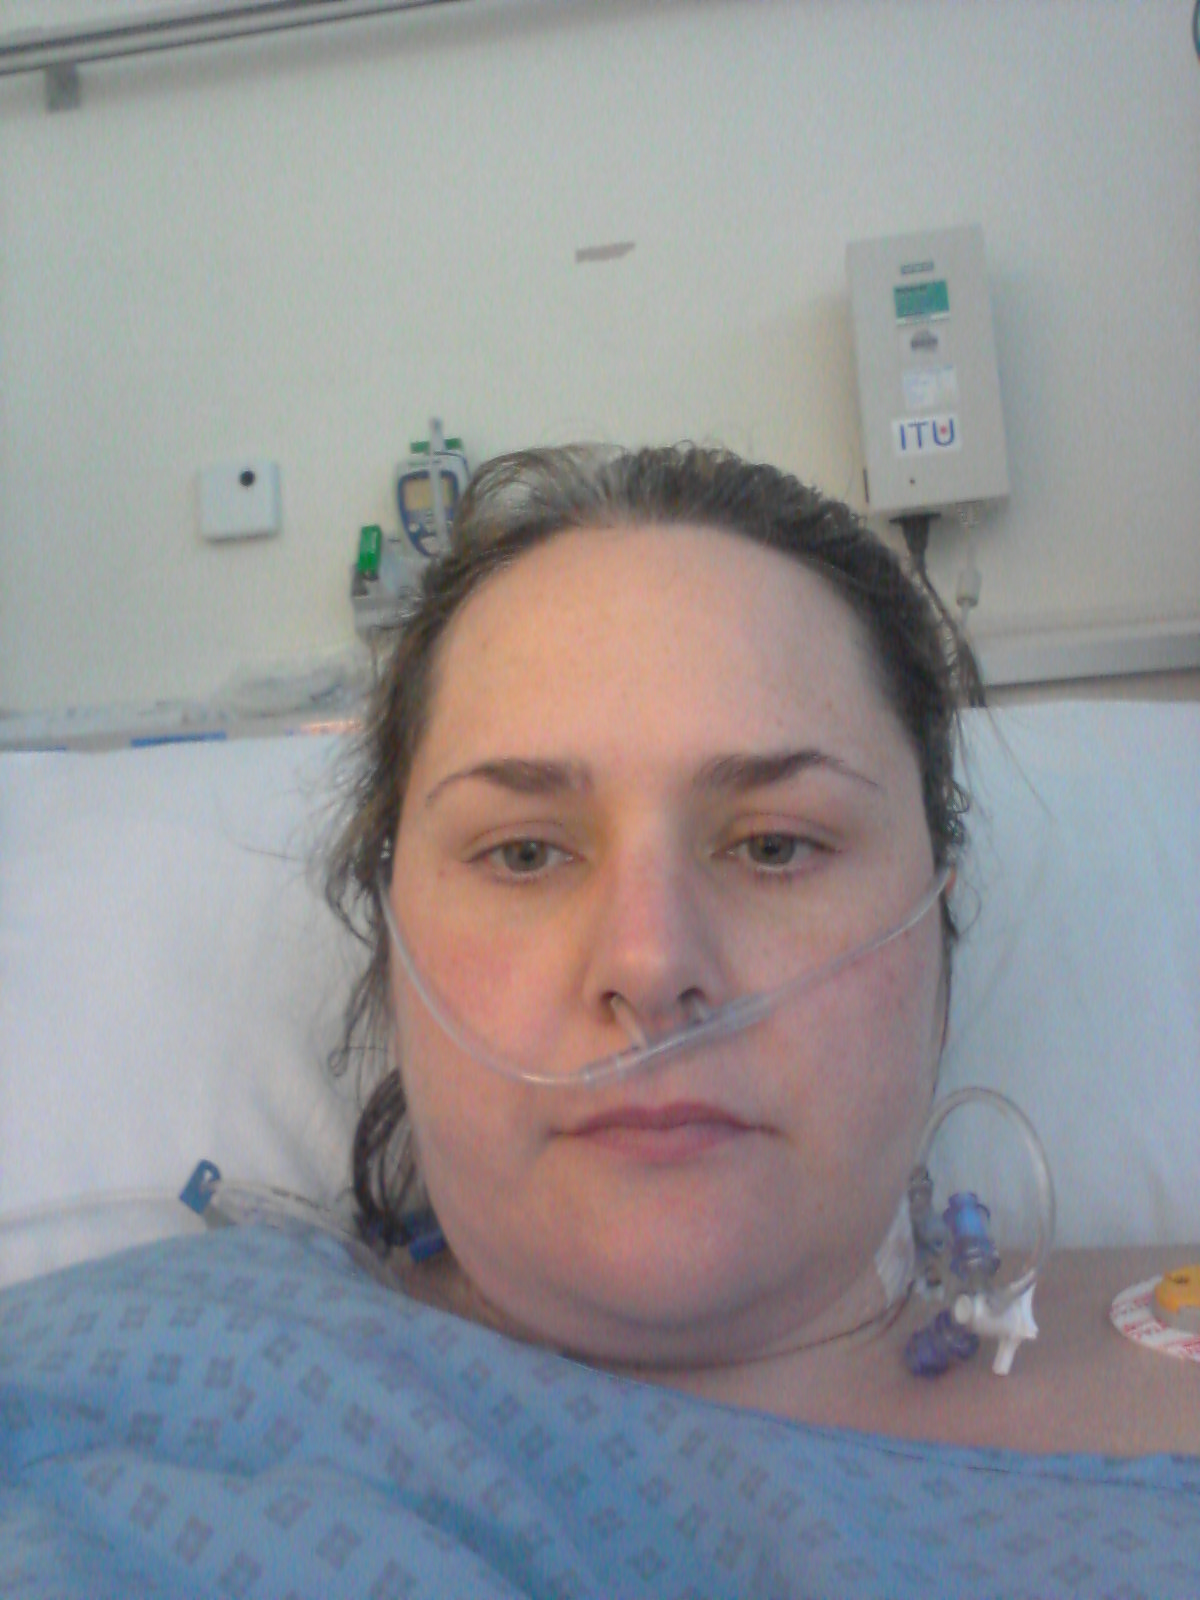 In intensive care